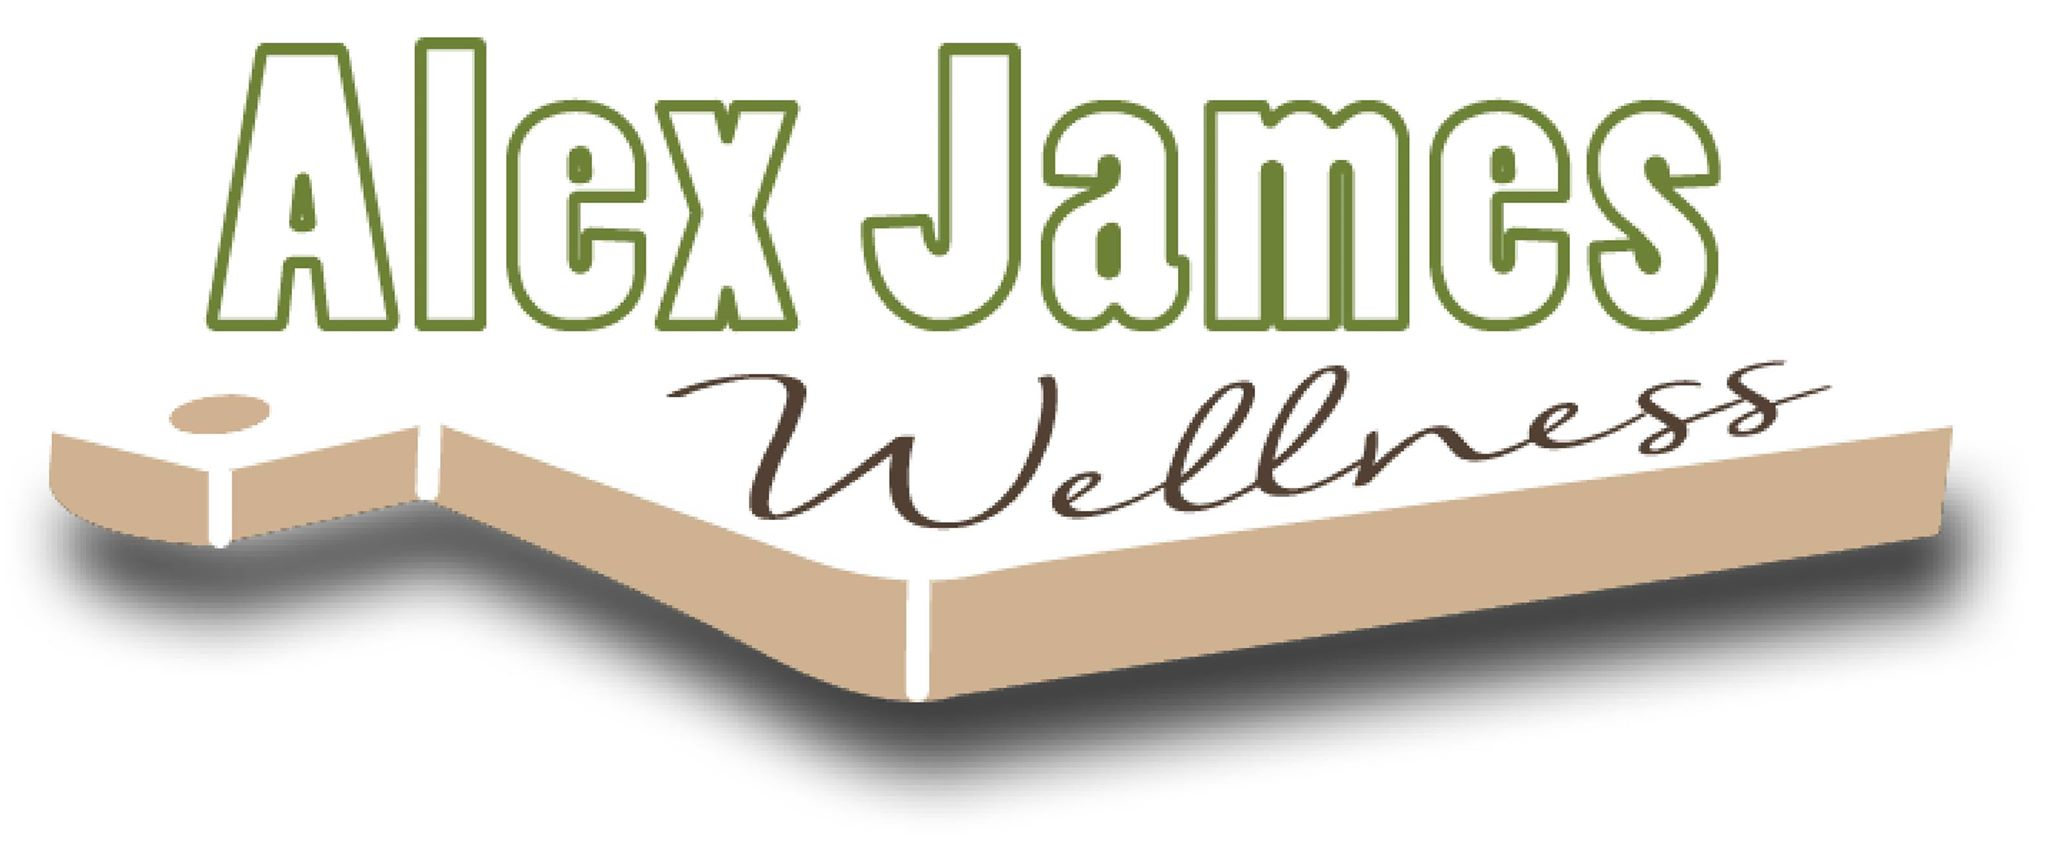 alex-james-wellness.jpg